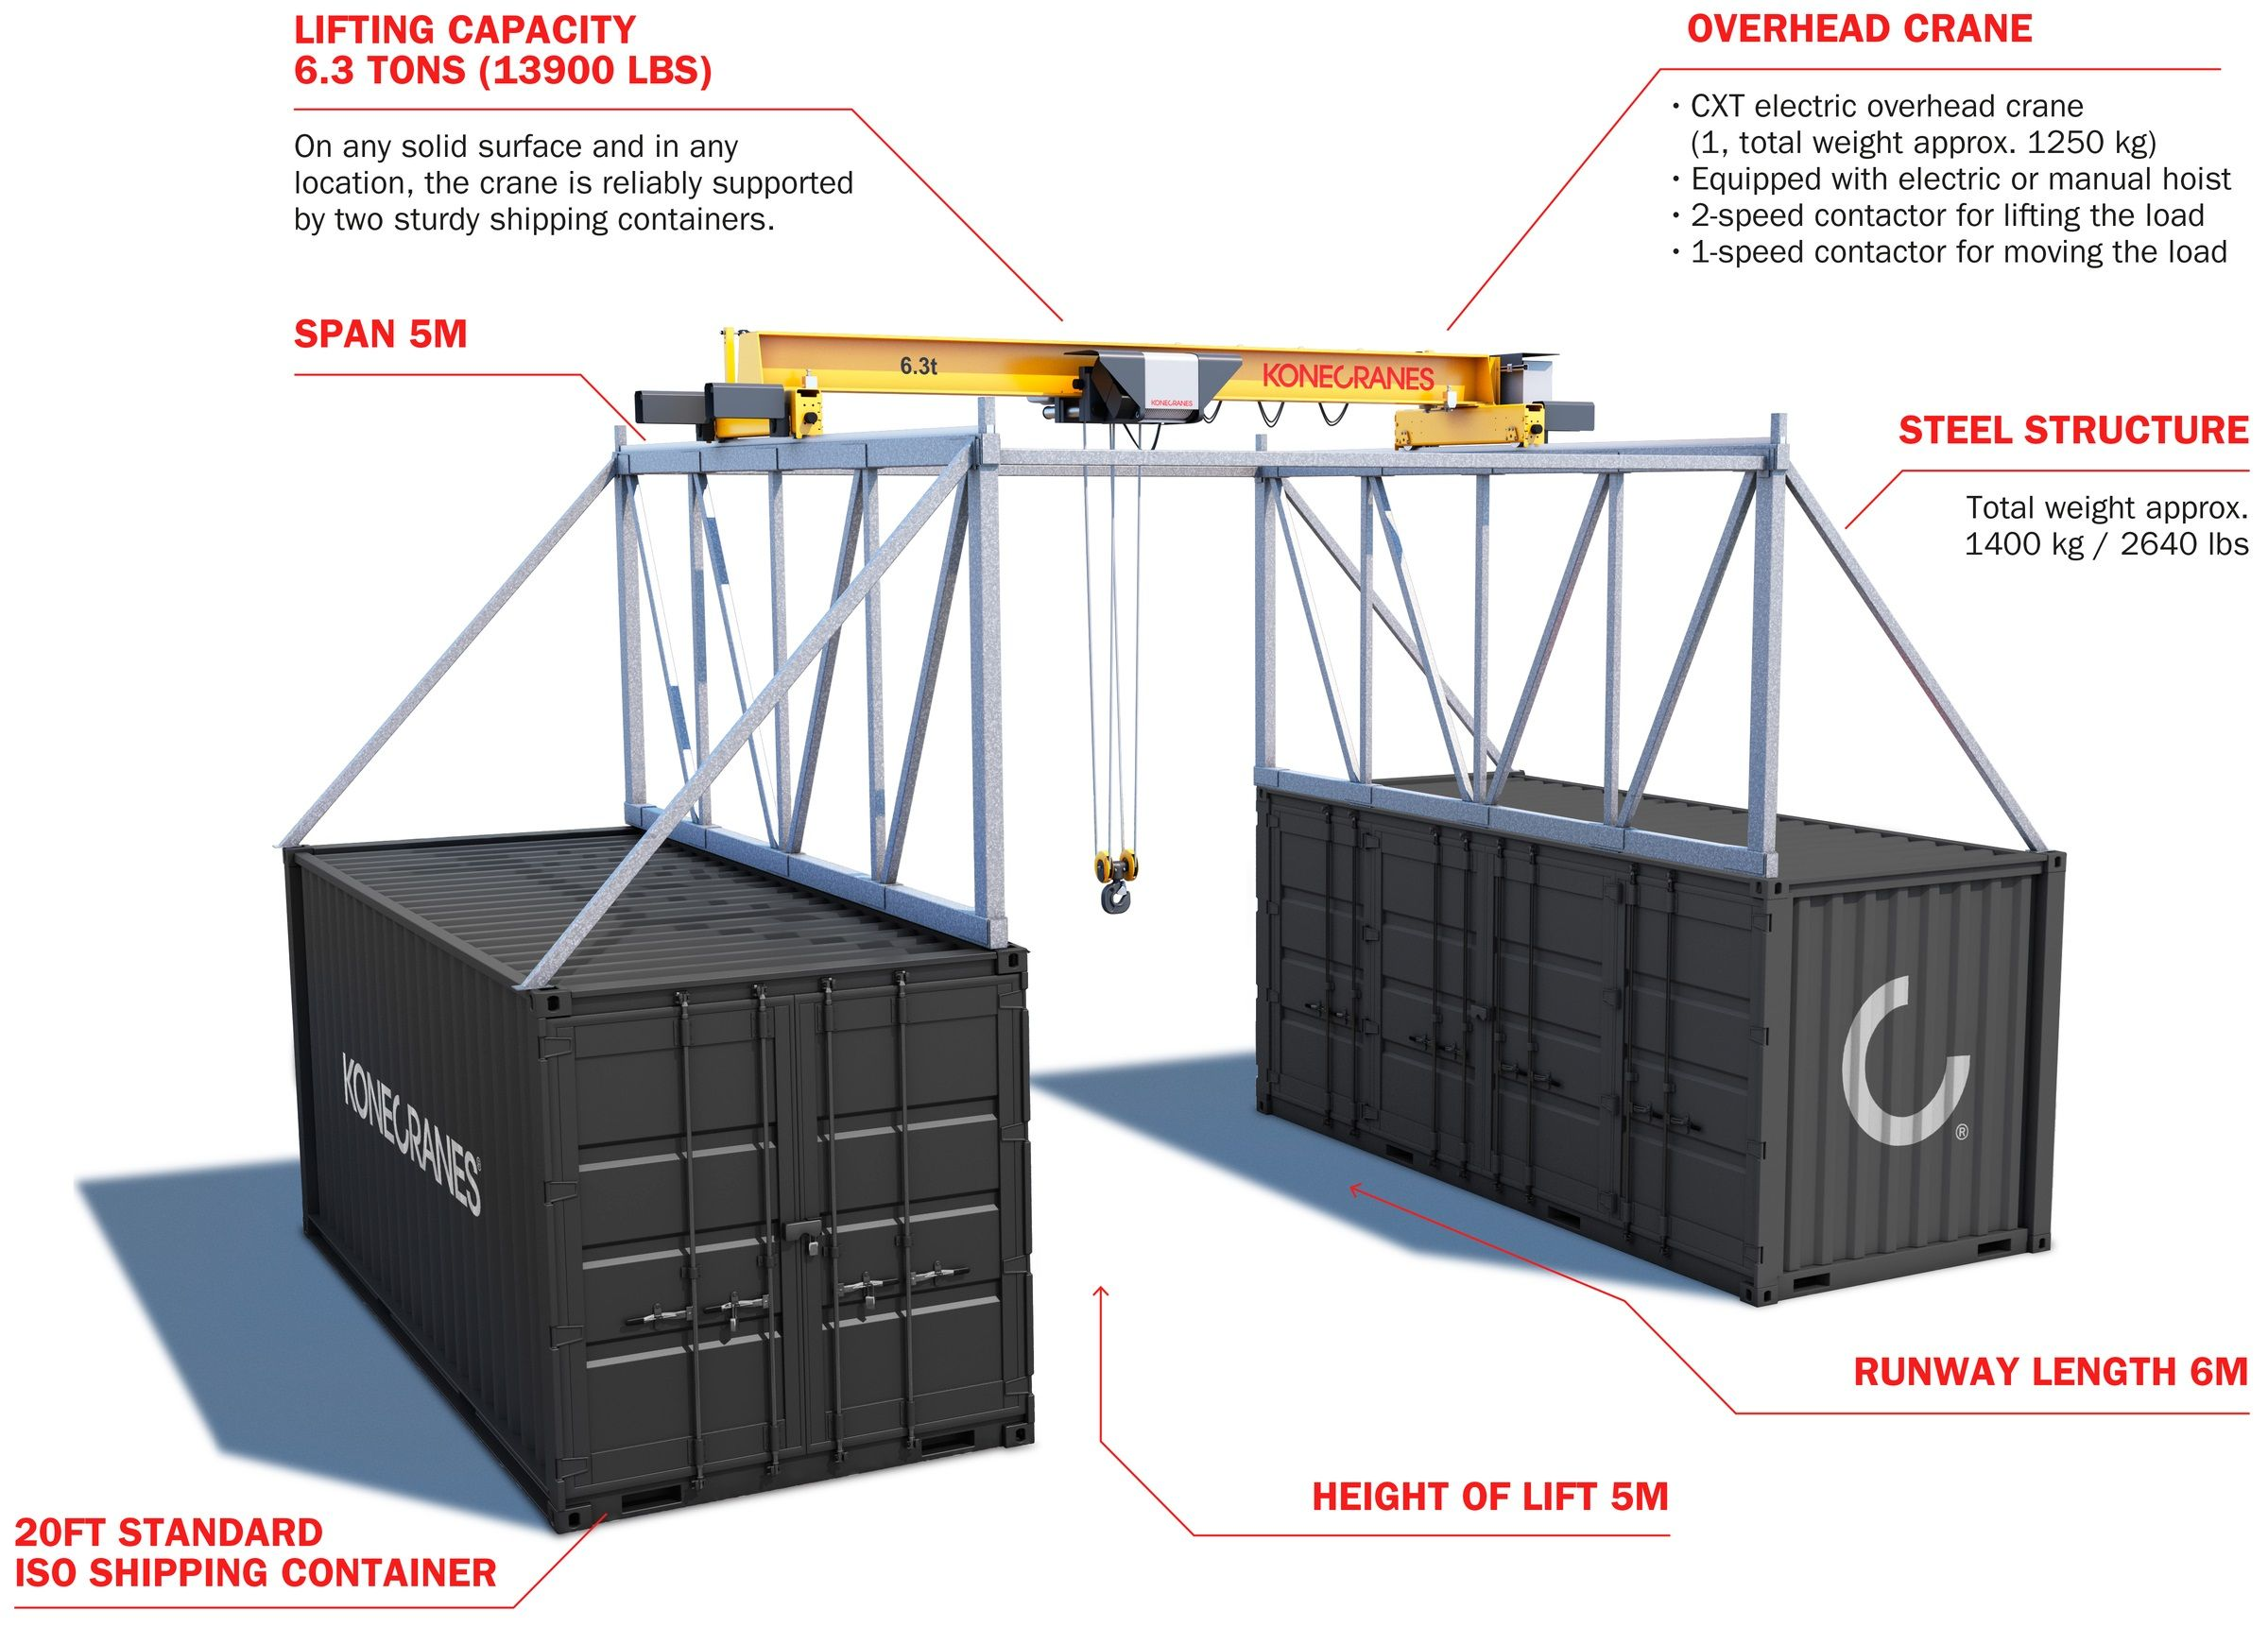 New Pack And Go Konecranes Mobile Crane On Shipping Containers For Indoor And Outdoor Use2 Jp Shipping Container Shipping Container House Plans Container House